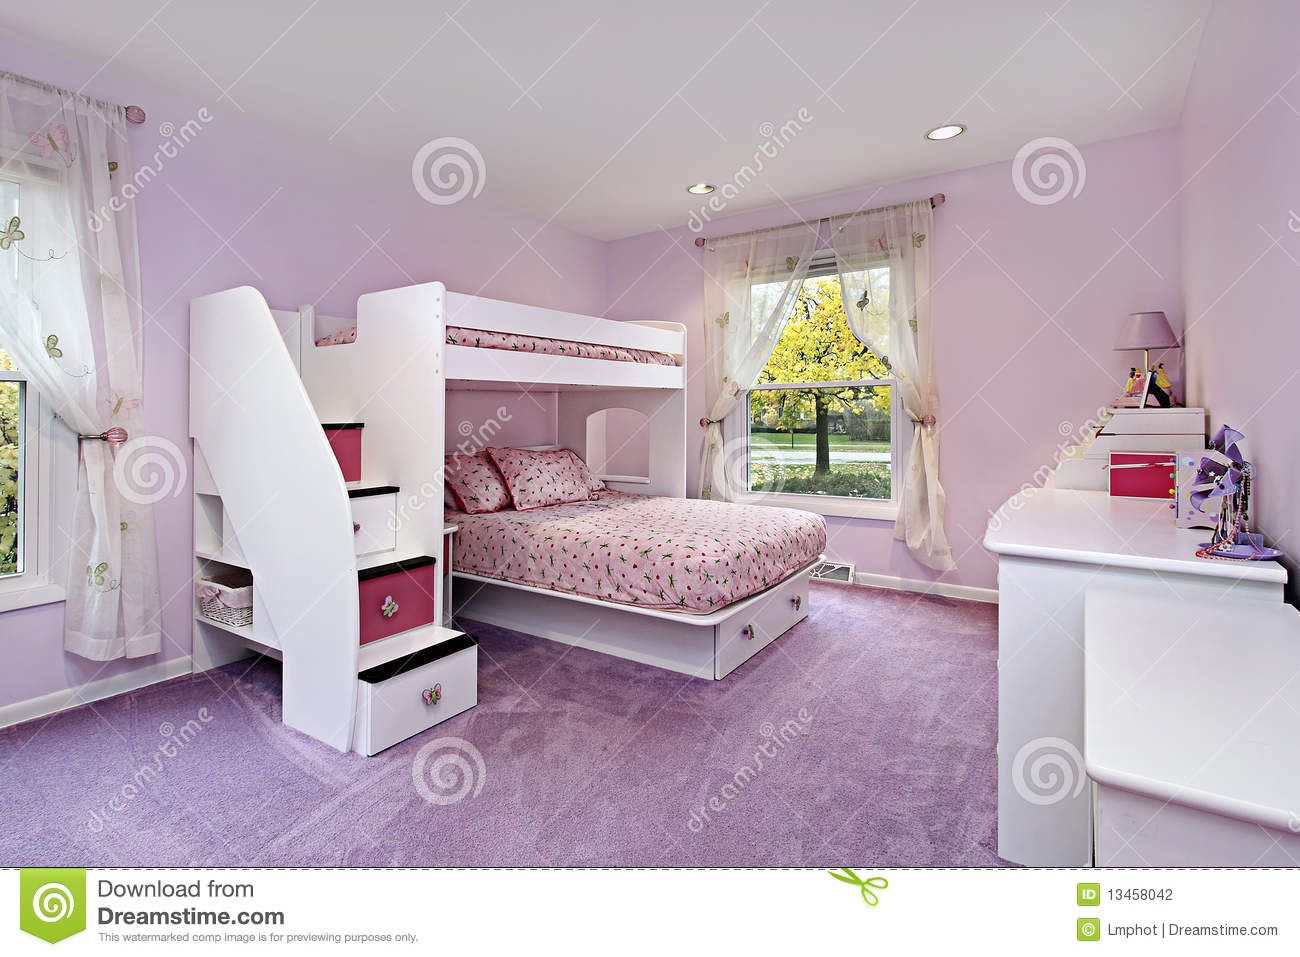 Girls Room With Bunk Bed Stock Photo Image Of Carpet